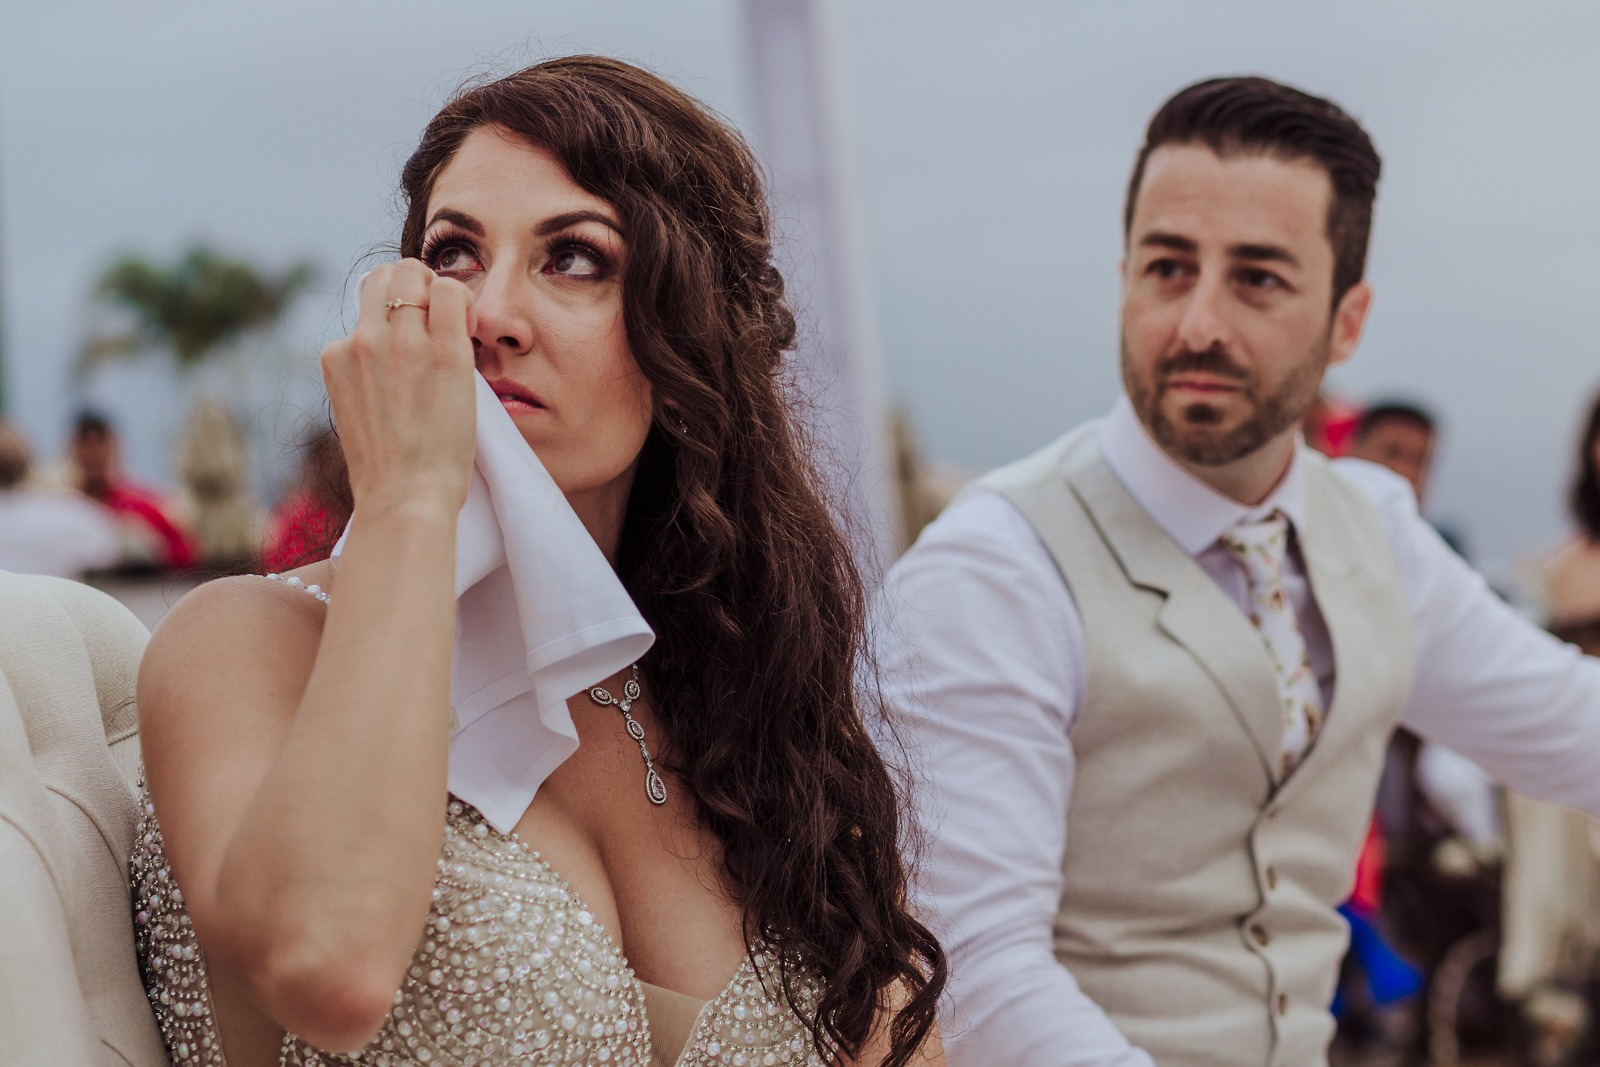 wedding-bride-speech-cry-tears-groom-true moment-vallarta